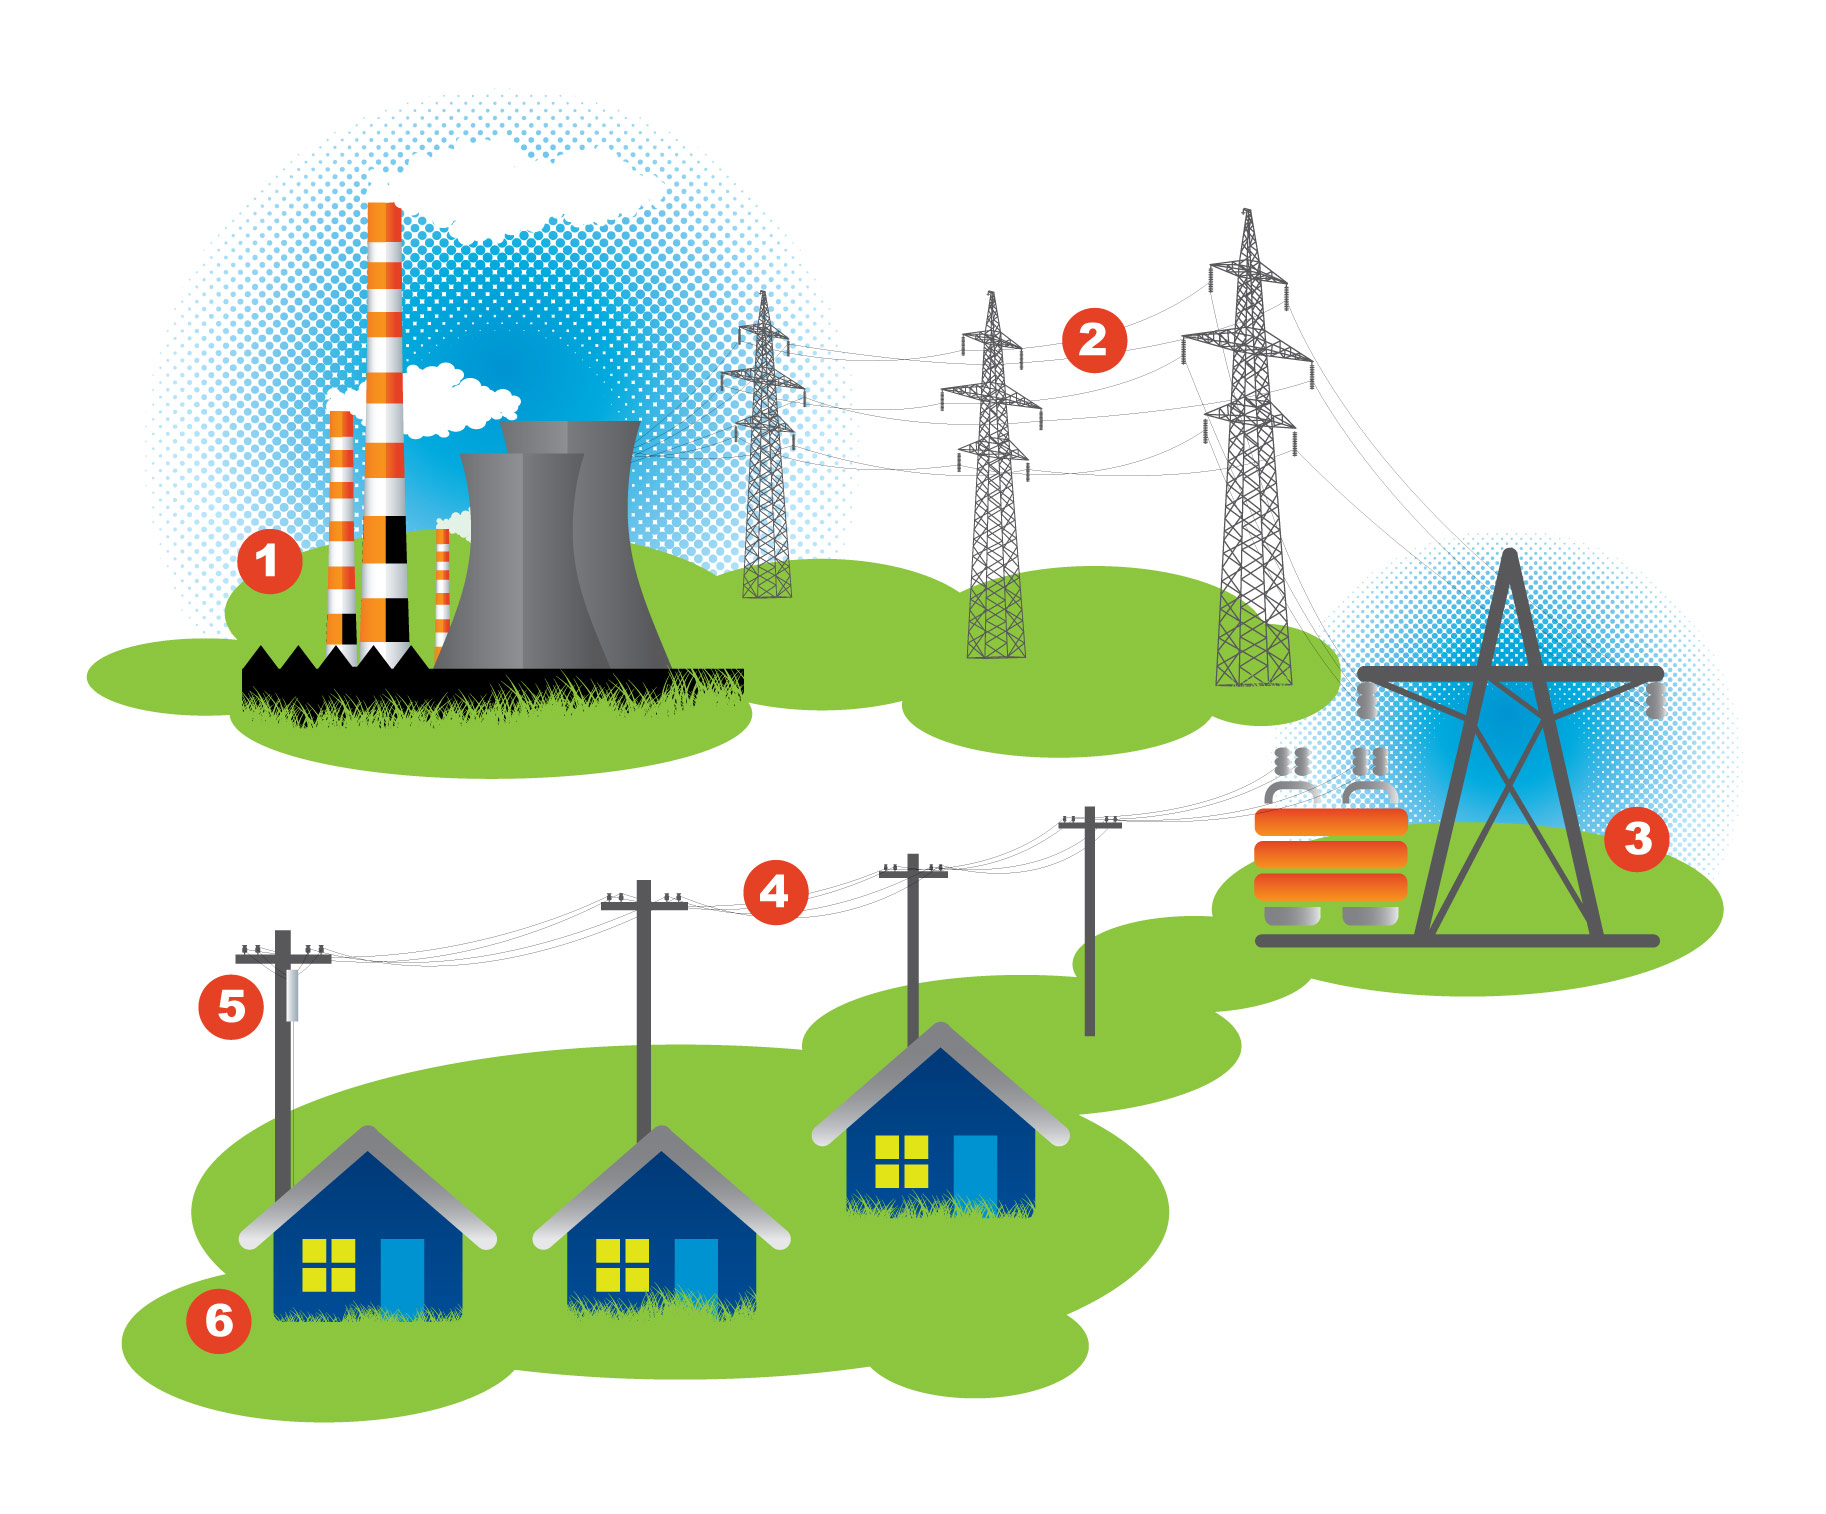 How Electricity Travels to Your Home Diagram: Electricity is generated at a power plant, transported over high-voltage transmission lines, reduced at a substation, Lower voltage distribution lines, Overhead transformer further reduces voltage and Electricity delivered to your home